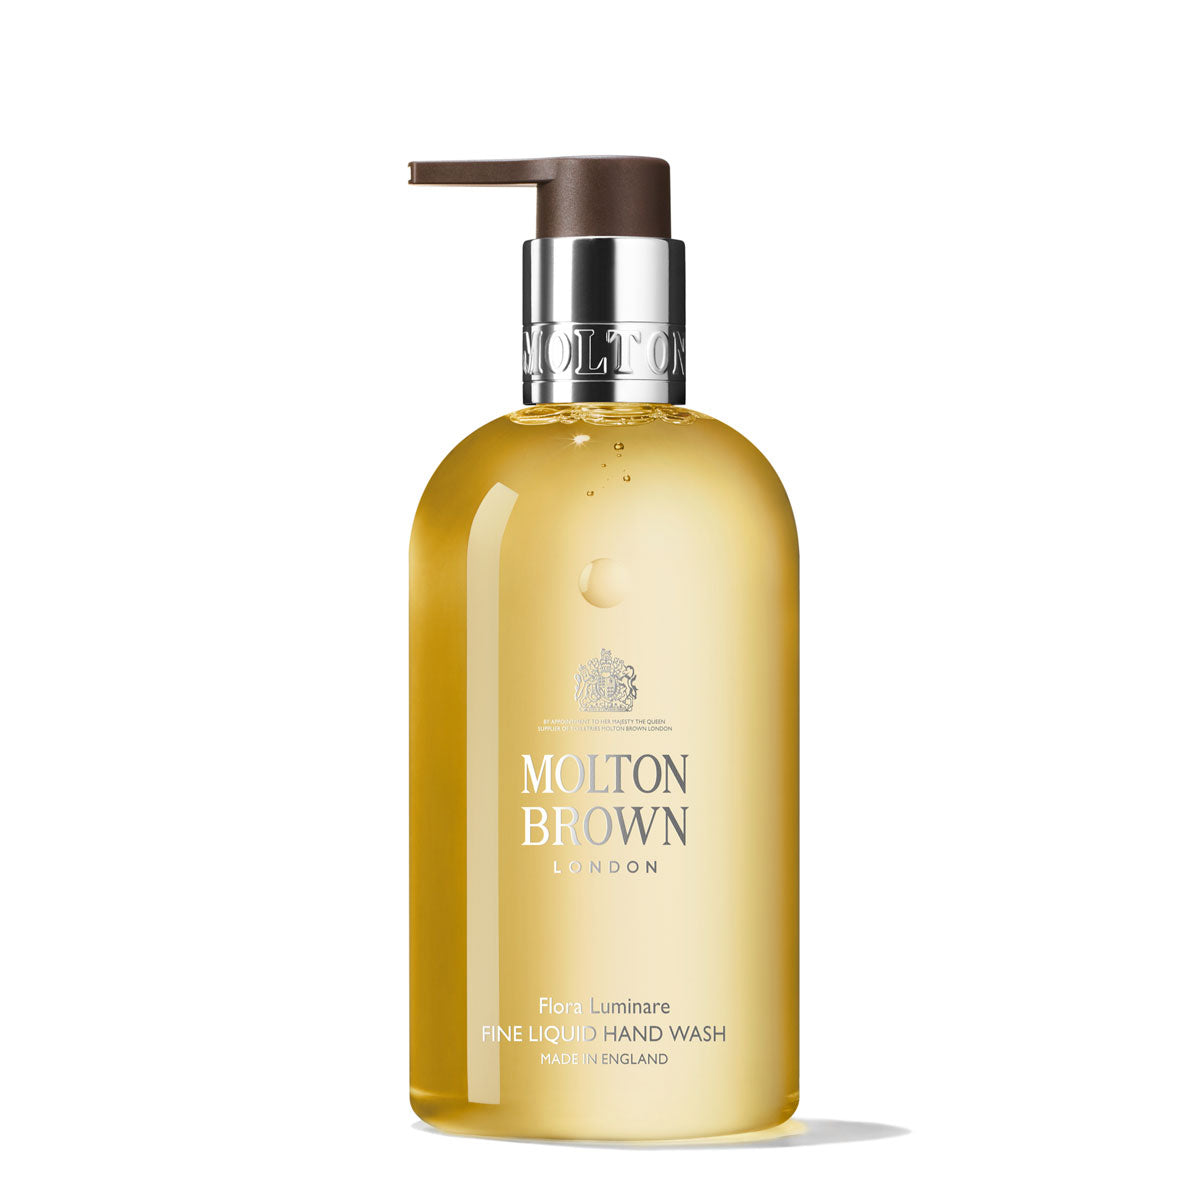 Molton Brown Flora Luminare Fine Liquid Hand Wash 300ml